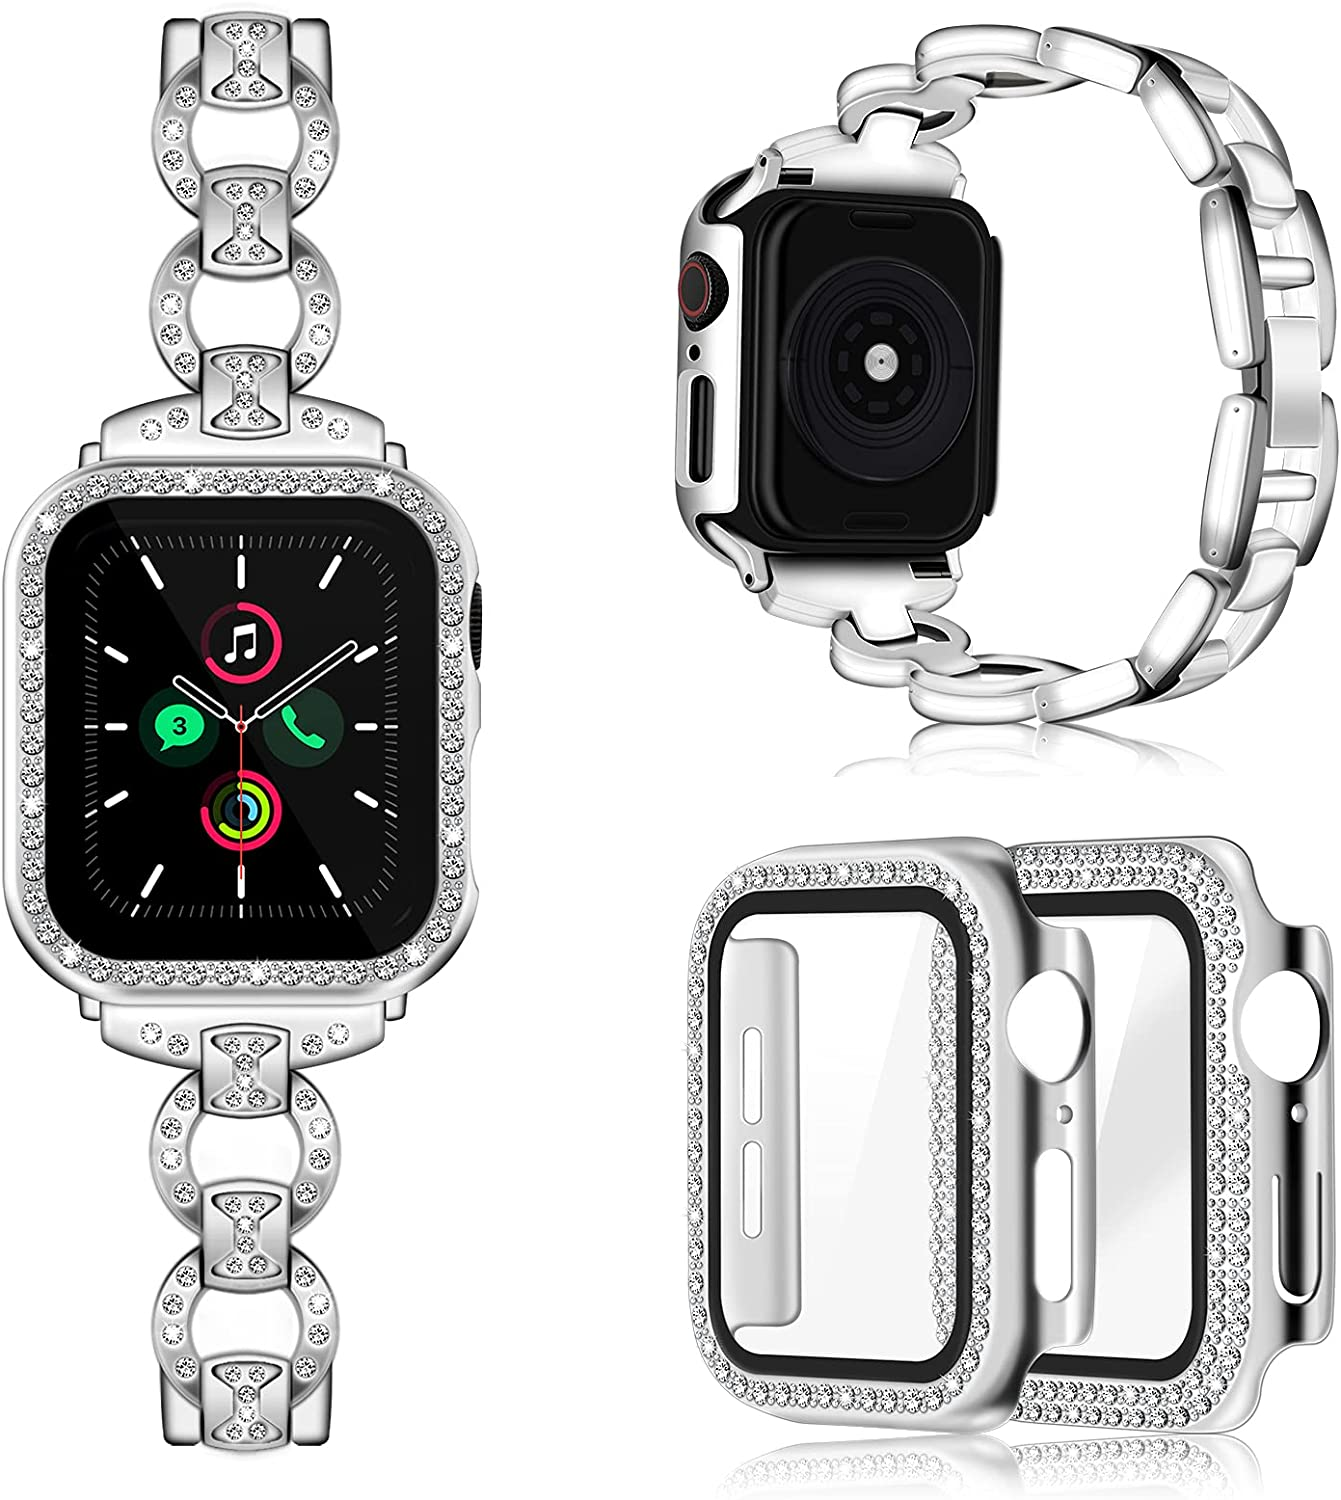 Invoibler Compatible with Apple Watch Band 40mm with Rhinestone Protective Cover, Women Girls Jewelry Replacement Metal Wristband Strap with 2PCS Bling Diamond PC Protective Case for iWatch Series 6/5/4 (Silver)